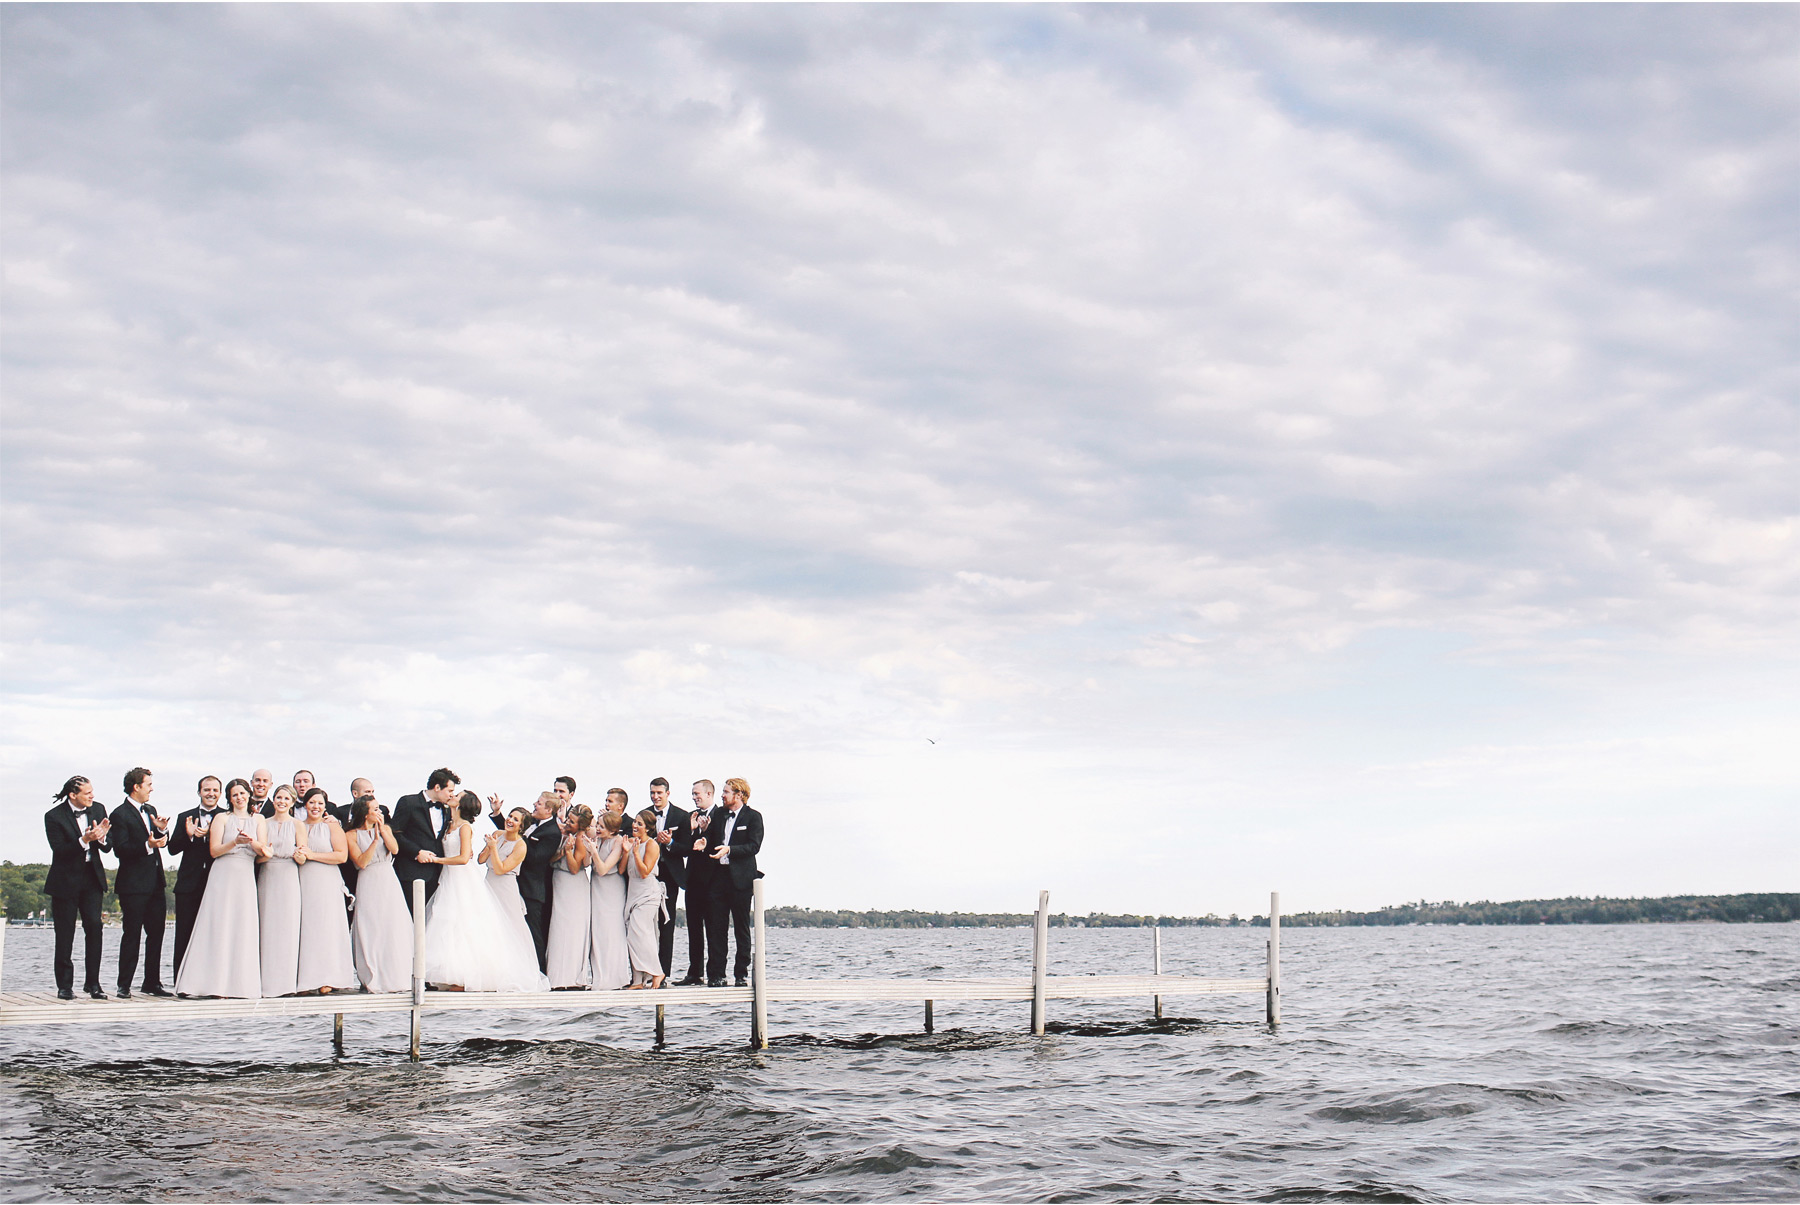 15-Brainerd-Minnesota-Wedding-Photography-by-Vick-Photography-Grand-View-Lodge-Lake-Wedding-Party-Group-Bethany-and-Anthony.jpg